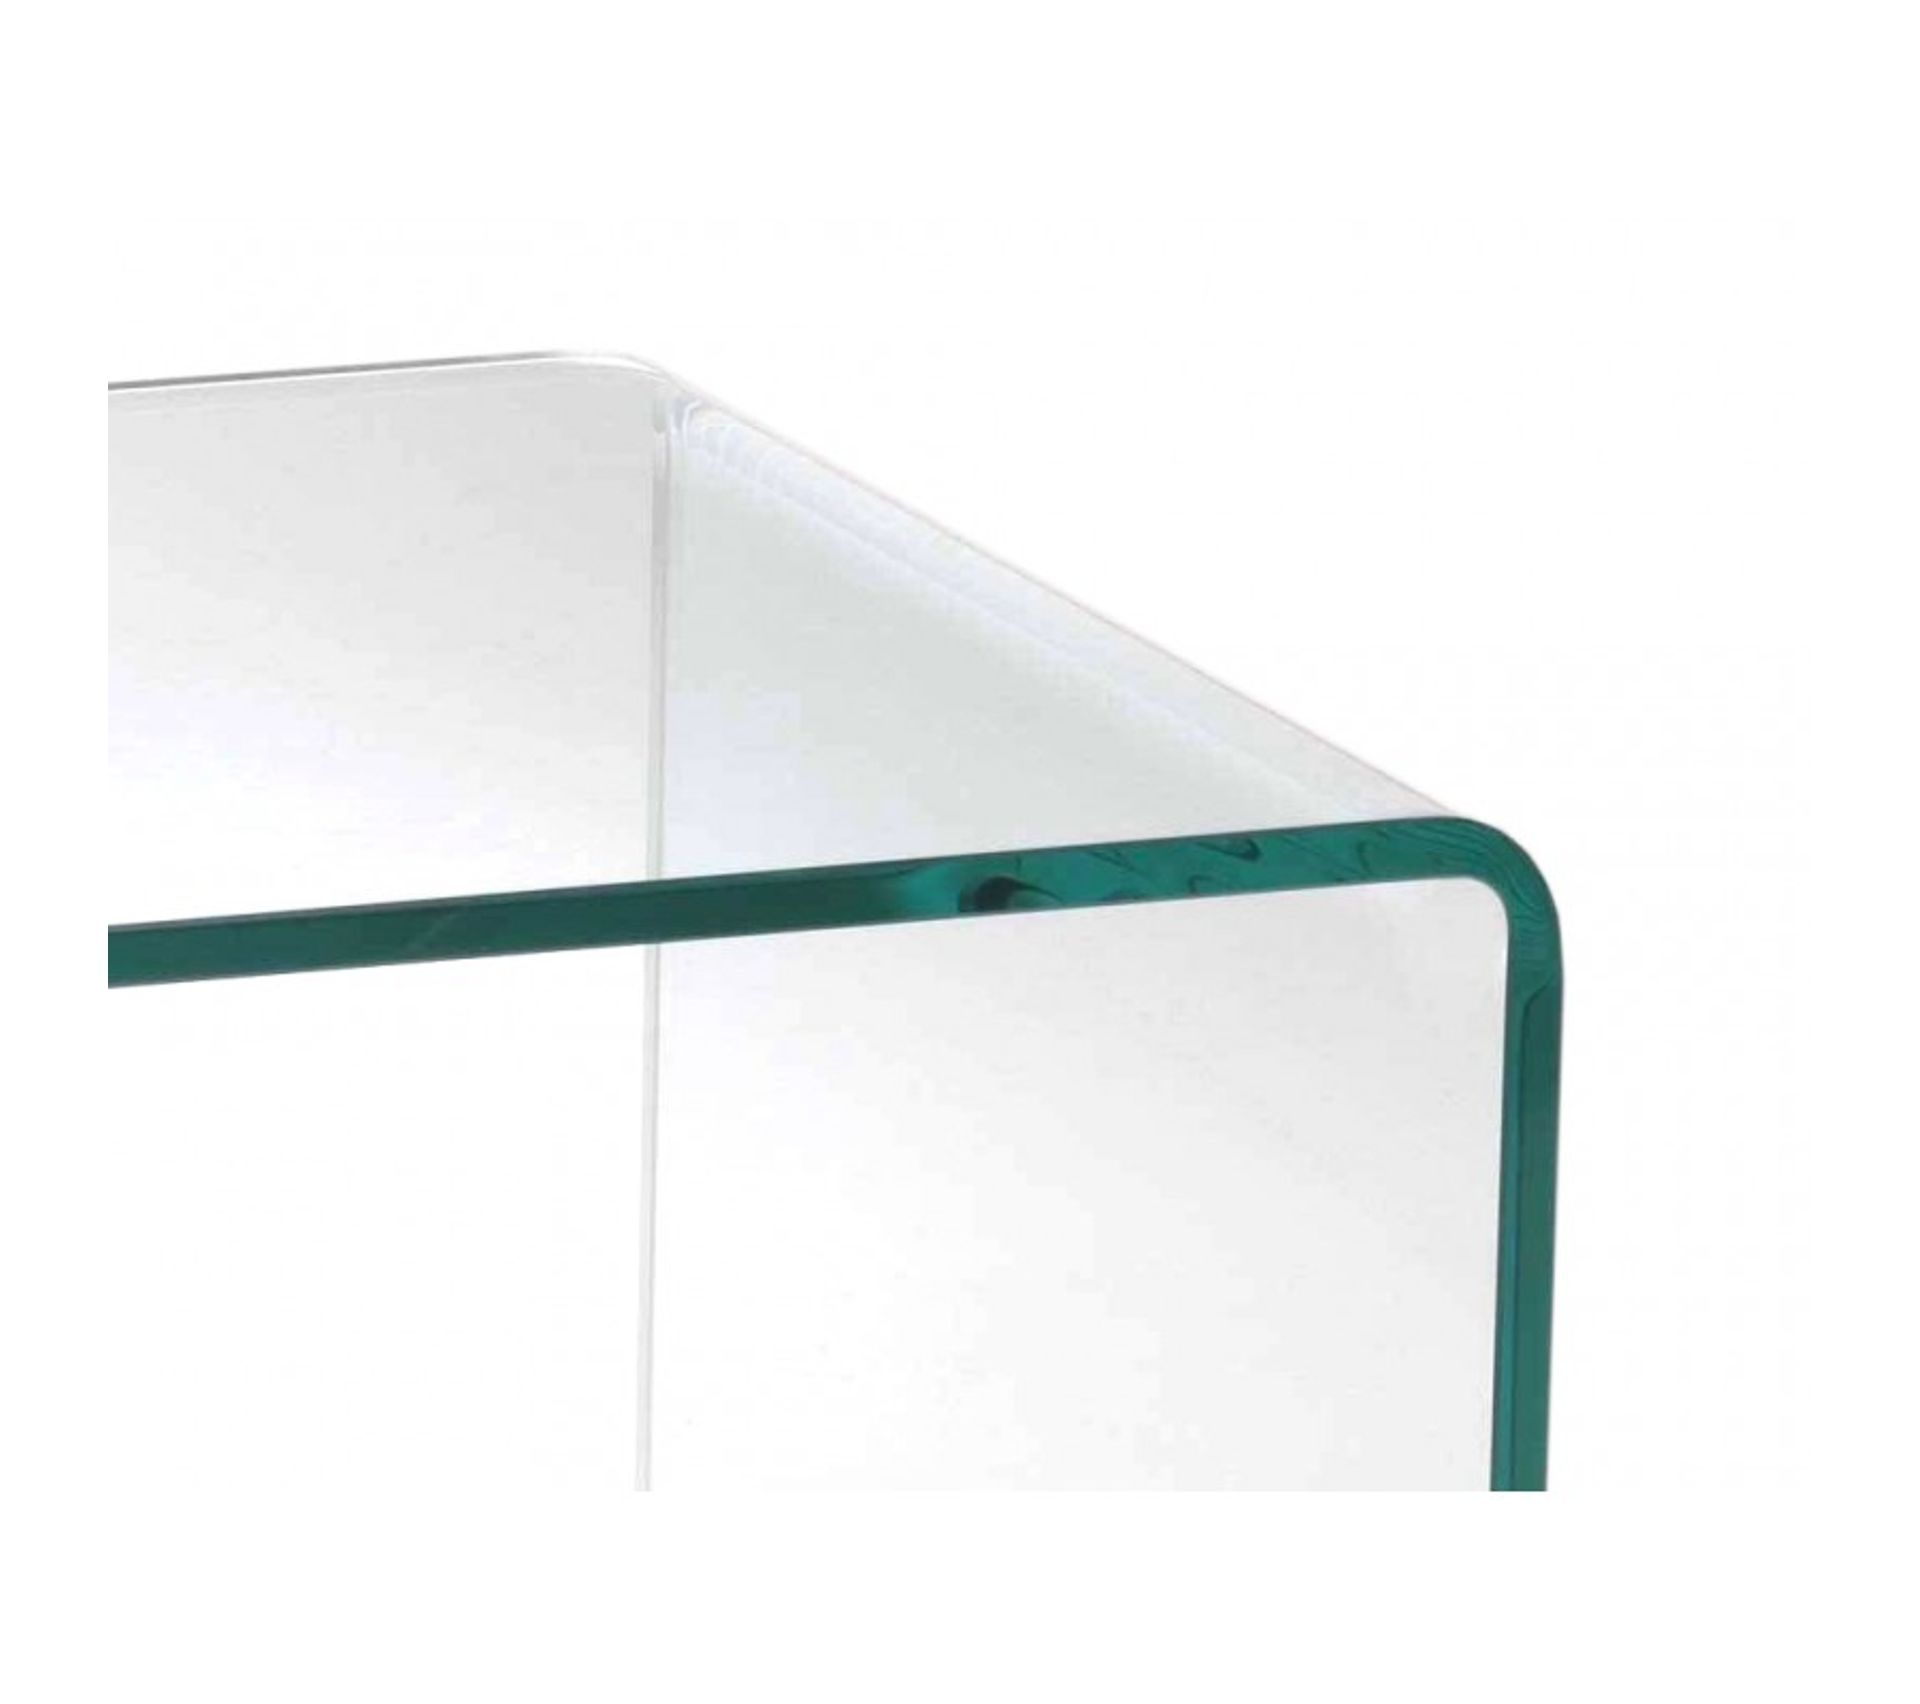 Meuble Tv En Verre Transparent Plateau Base Roulante En Bois Decor Chene Ice